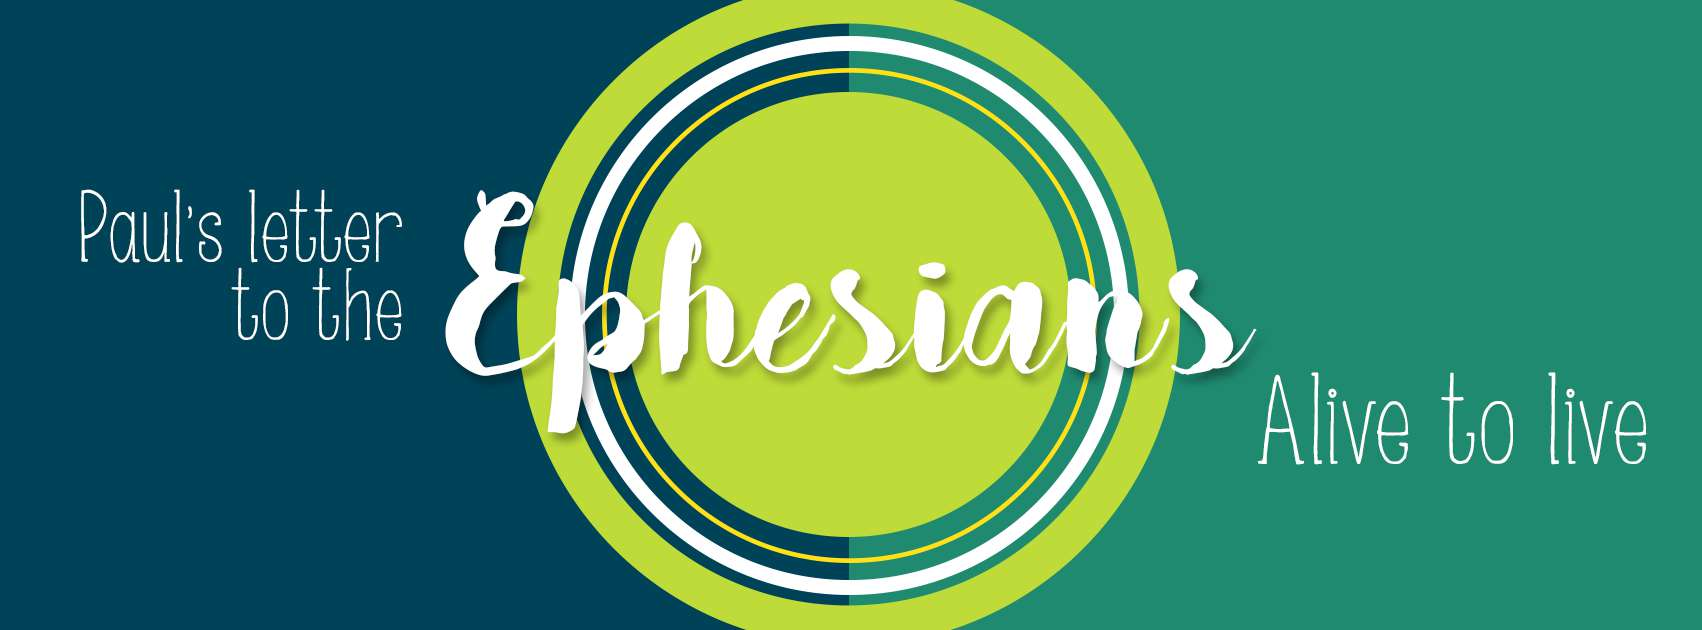 Ephesians: Alive to Live, Part 2: 1:15-23